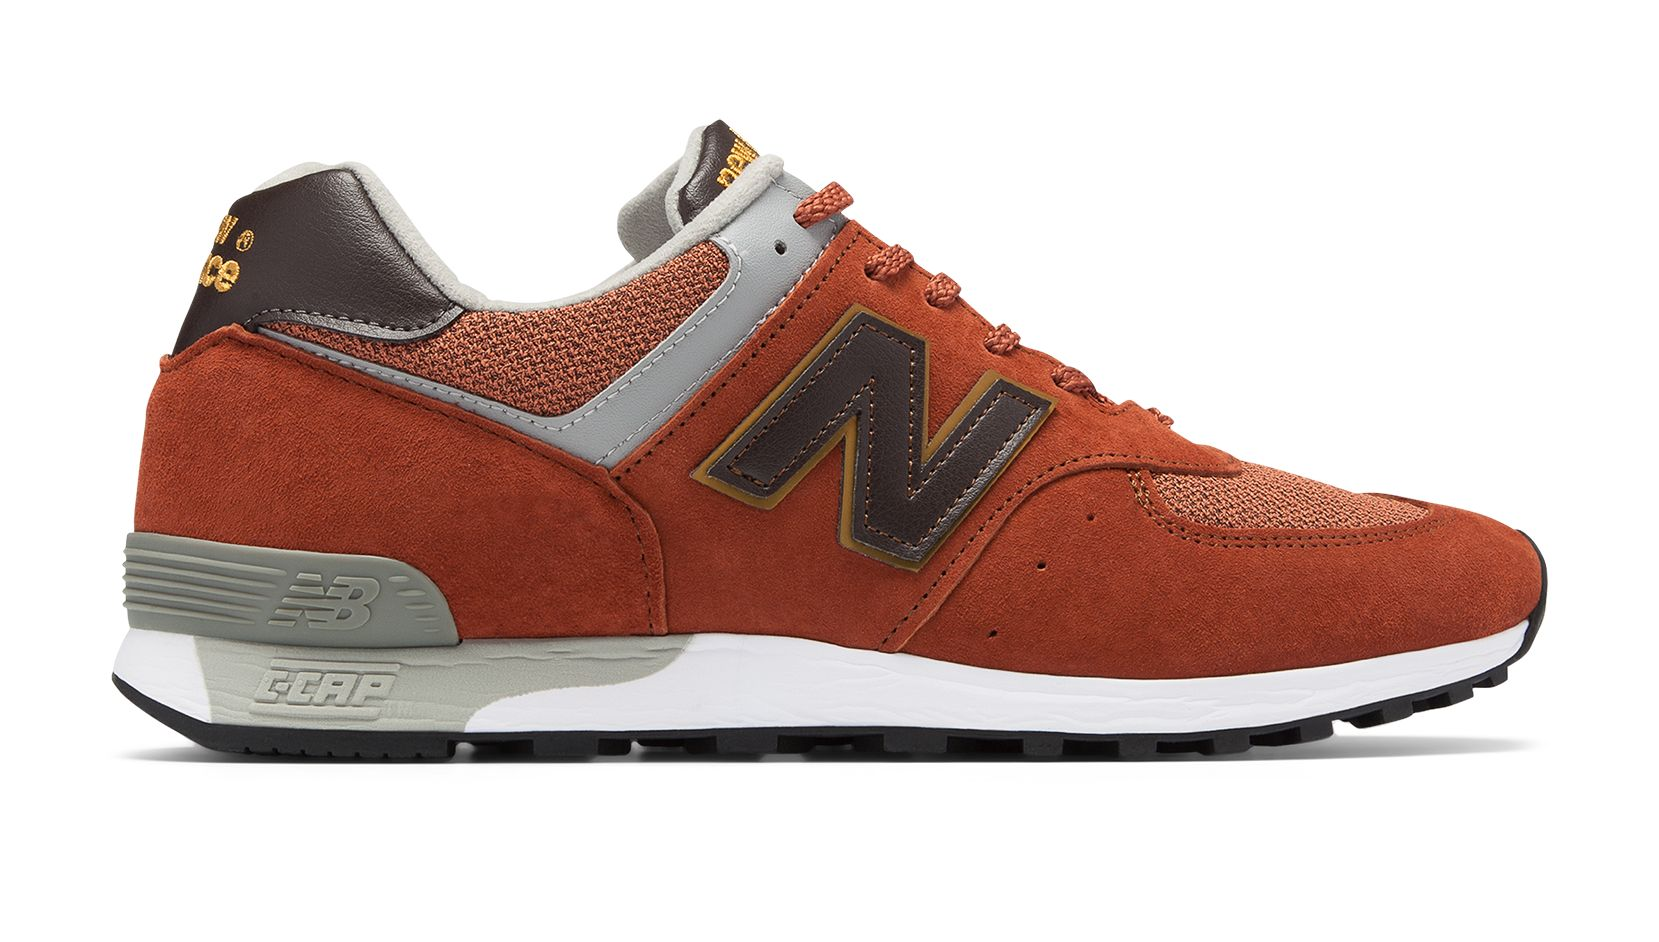 New Balance 576 Boston Edition